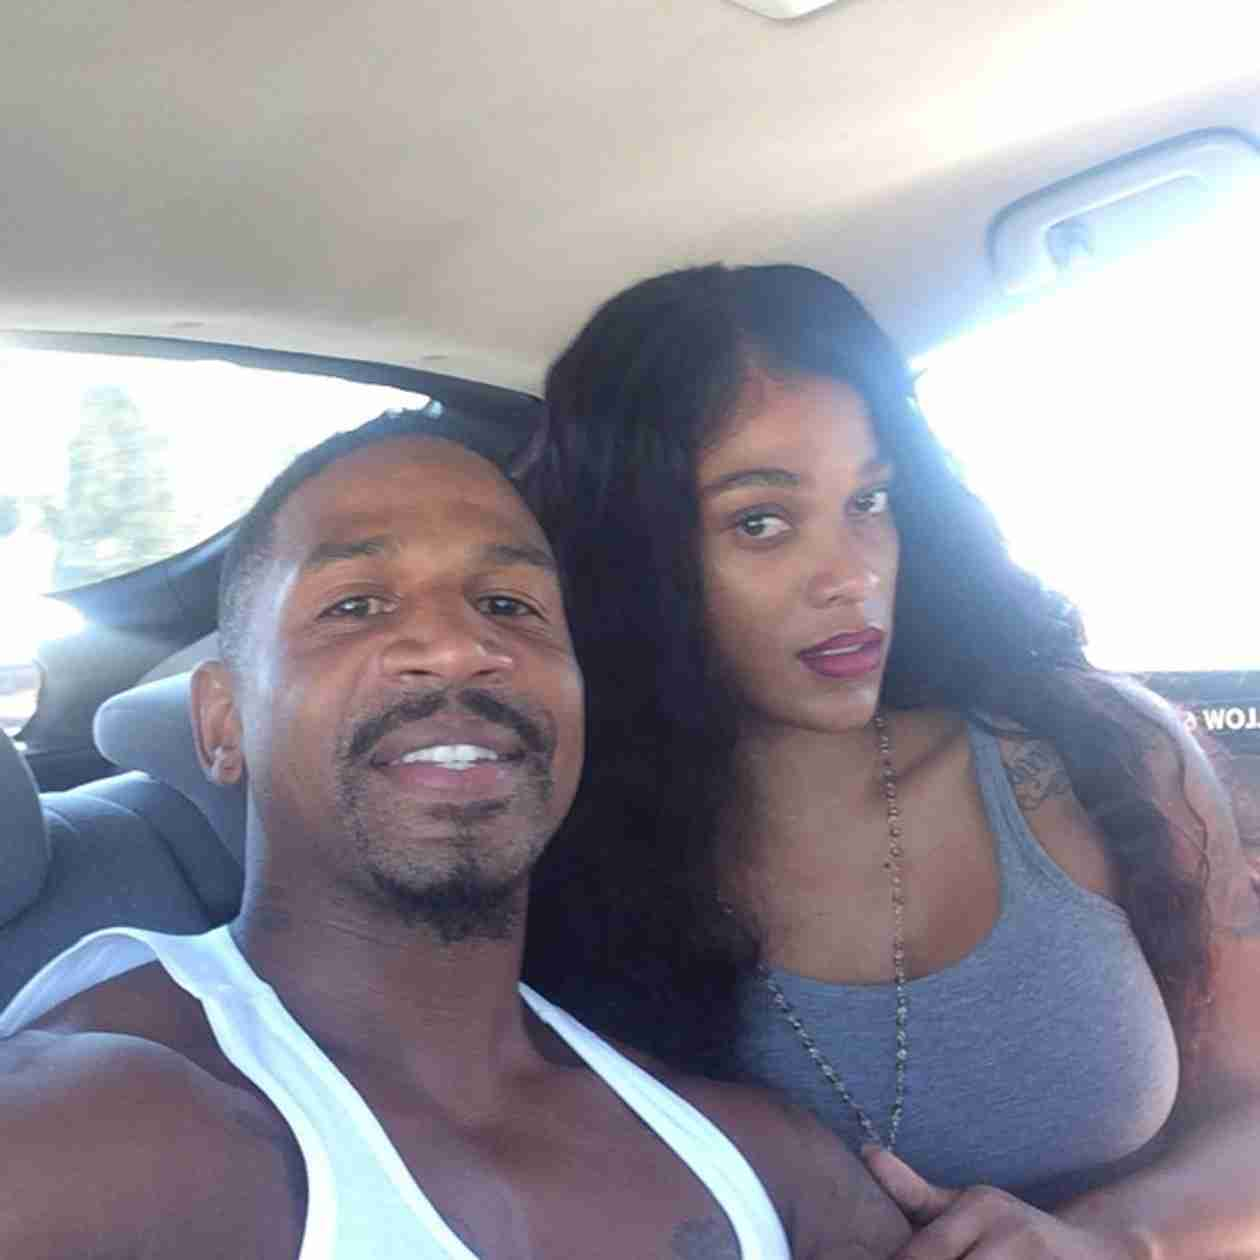 Were Stevie J. And Joseline Hernandez Evicted From Their